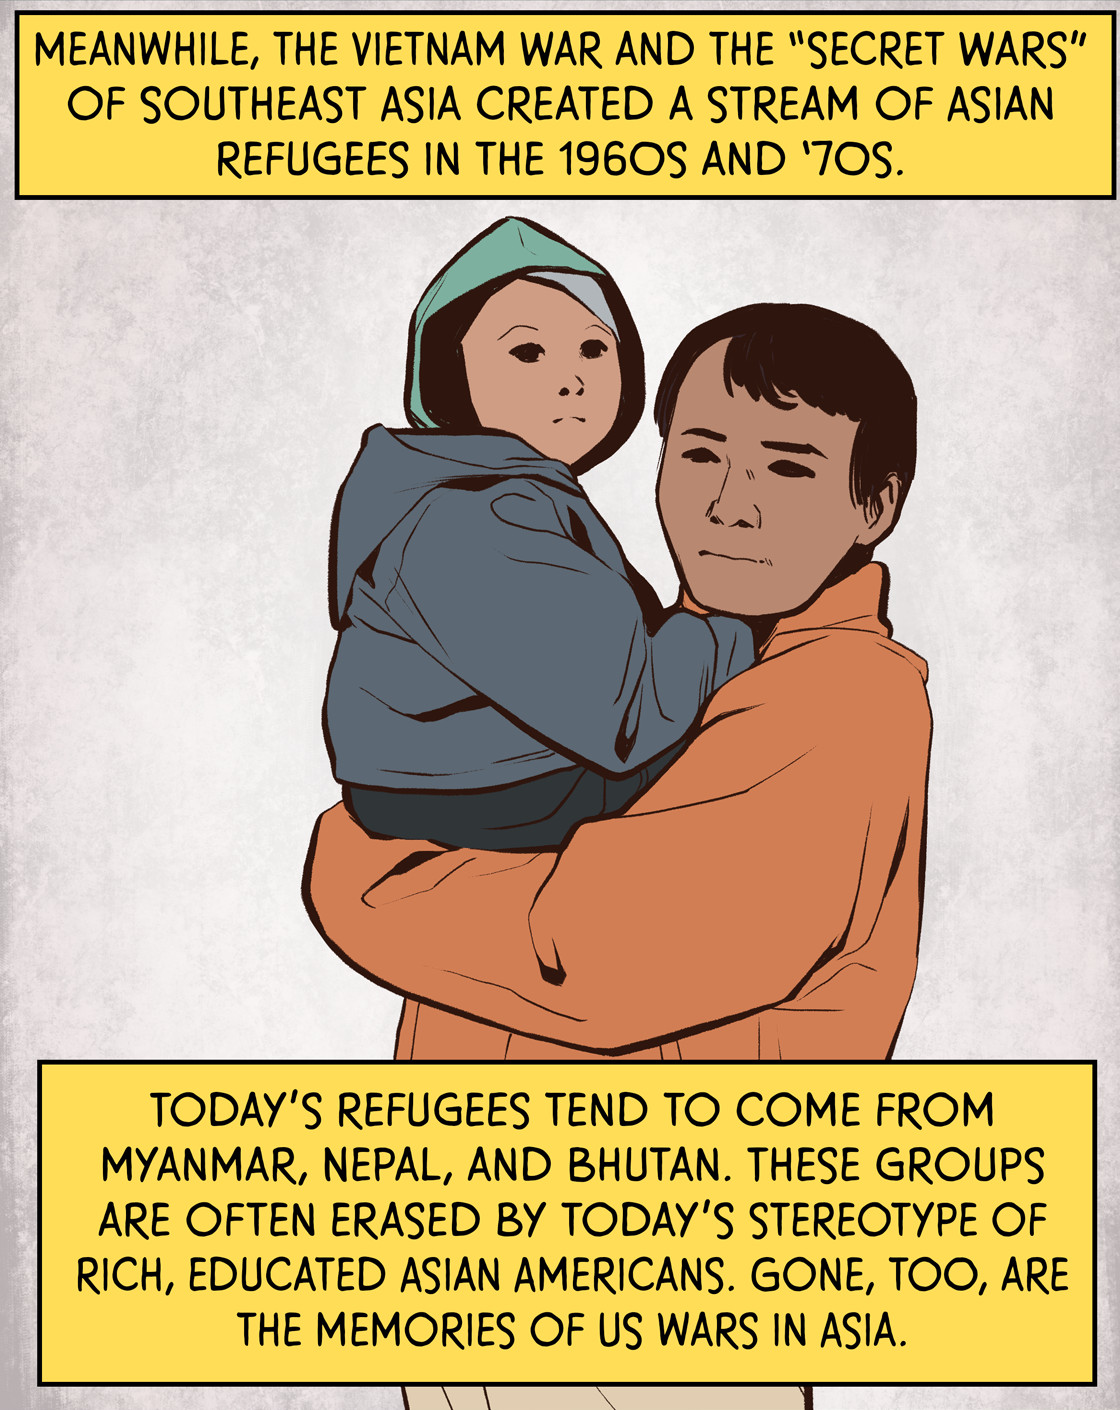 """Meanwhile, the Vietnam War, and the """"Secret Wars"""" of Southeast Asia created a stream of Asian refugees in the 1960s and 1970s. Today's refugees tend to come from Myanmar, Nepal, and Bhutan. These groups are often erased by today's stereotype of rich, educated Asian Americans. Gone, too, are the memories of U.S. wars in Asia."""